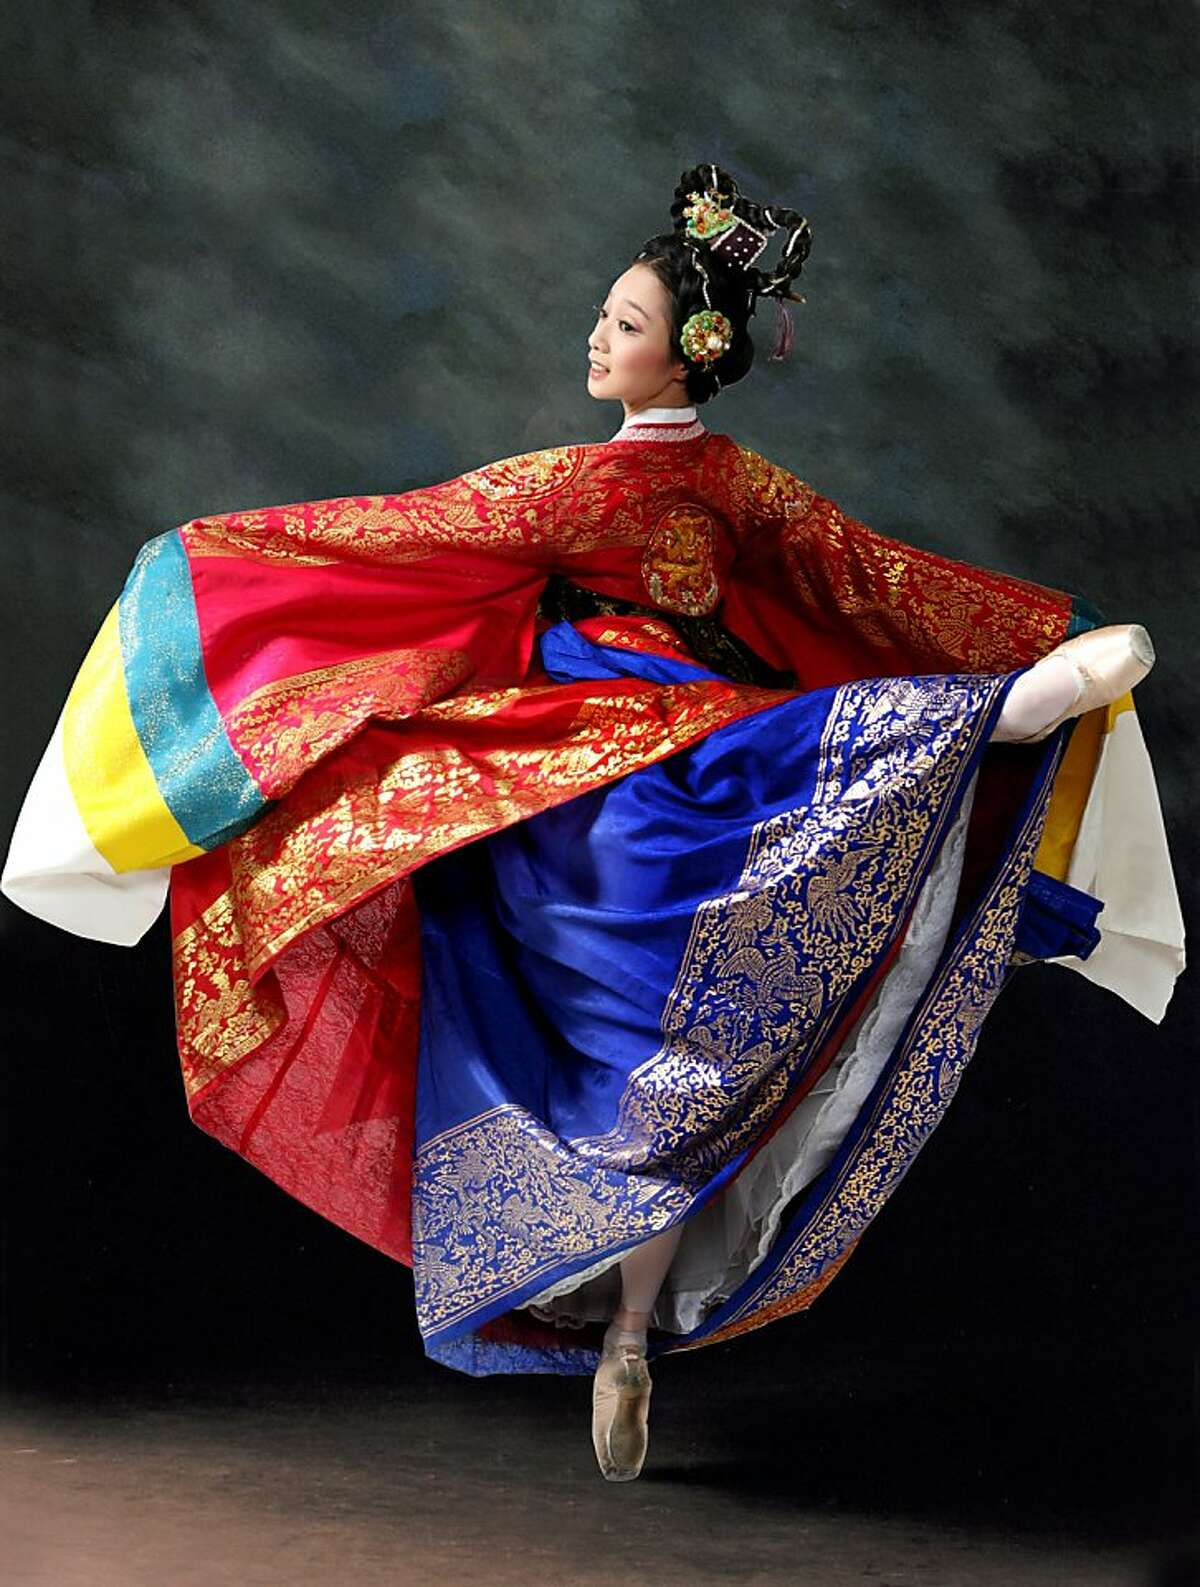 The Universal Ballet of Korean will present Shim Chung (The Blindman's Daughter) Friday and Sunday at the War Memorial Opera House. The Korean folk tale comes alive with an international cast of 71dancers from Korea, China, Russia, the United States and Japan. The tale is about the devoted daughter of a blind man who, when learning that that a donation of 300 bags of rice to the local temple will allow her father to regain his sight, willingly sells herself to the captain of a ship as a sacrifice to protect his vessel from the wrath of the Sea Dragon King. Tickets are available at the cityboxoffice.com